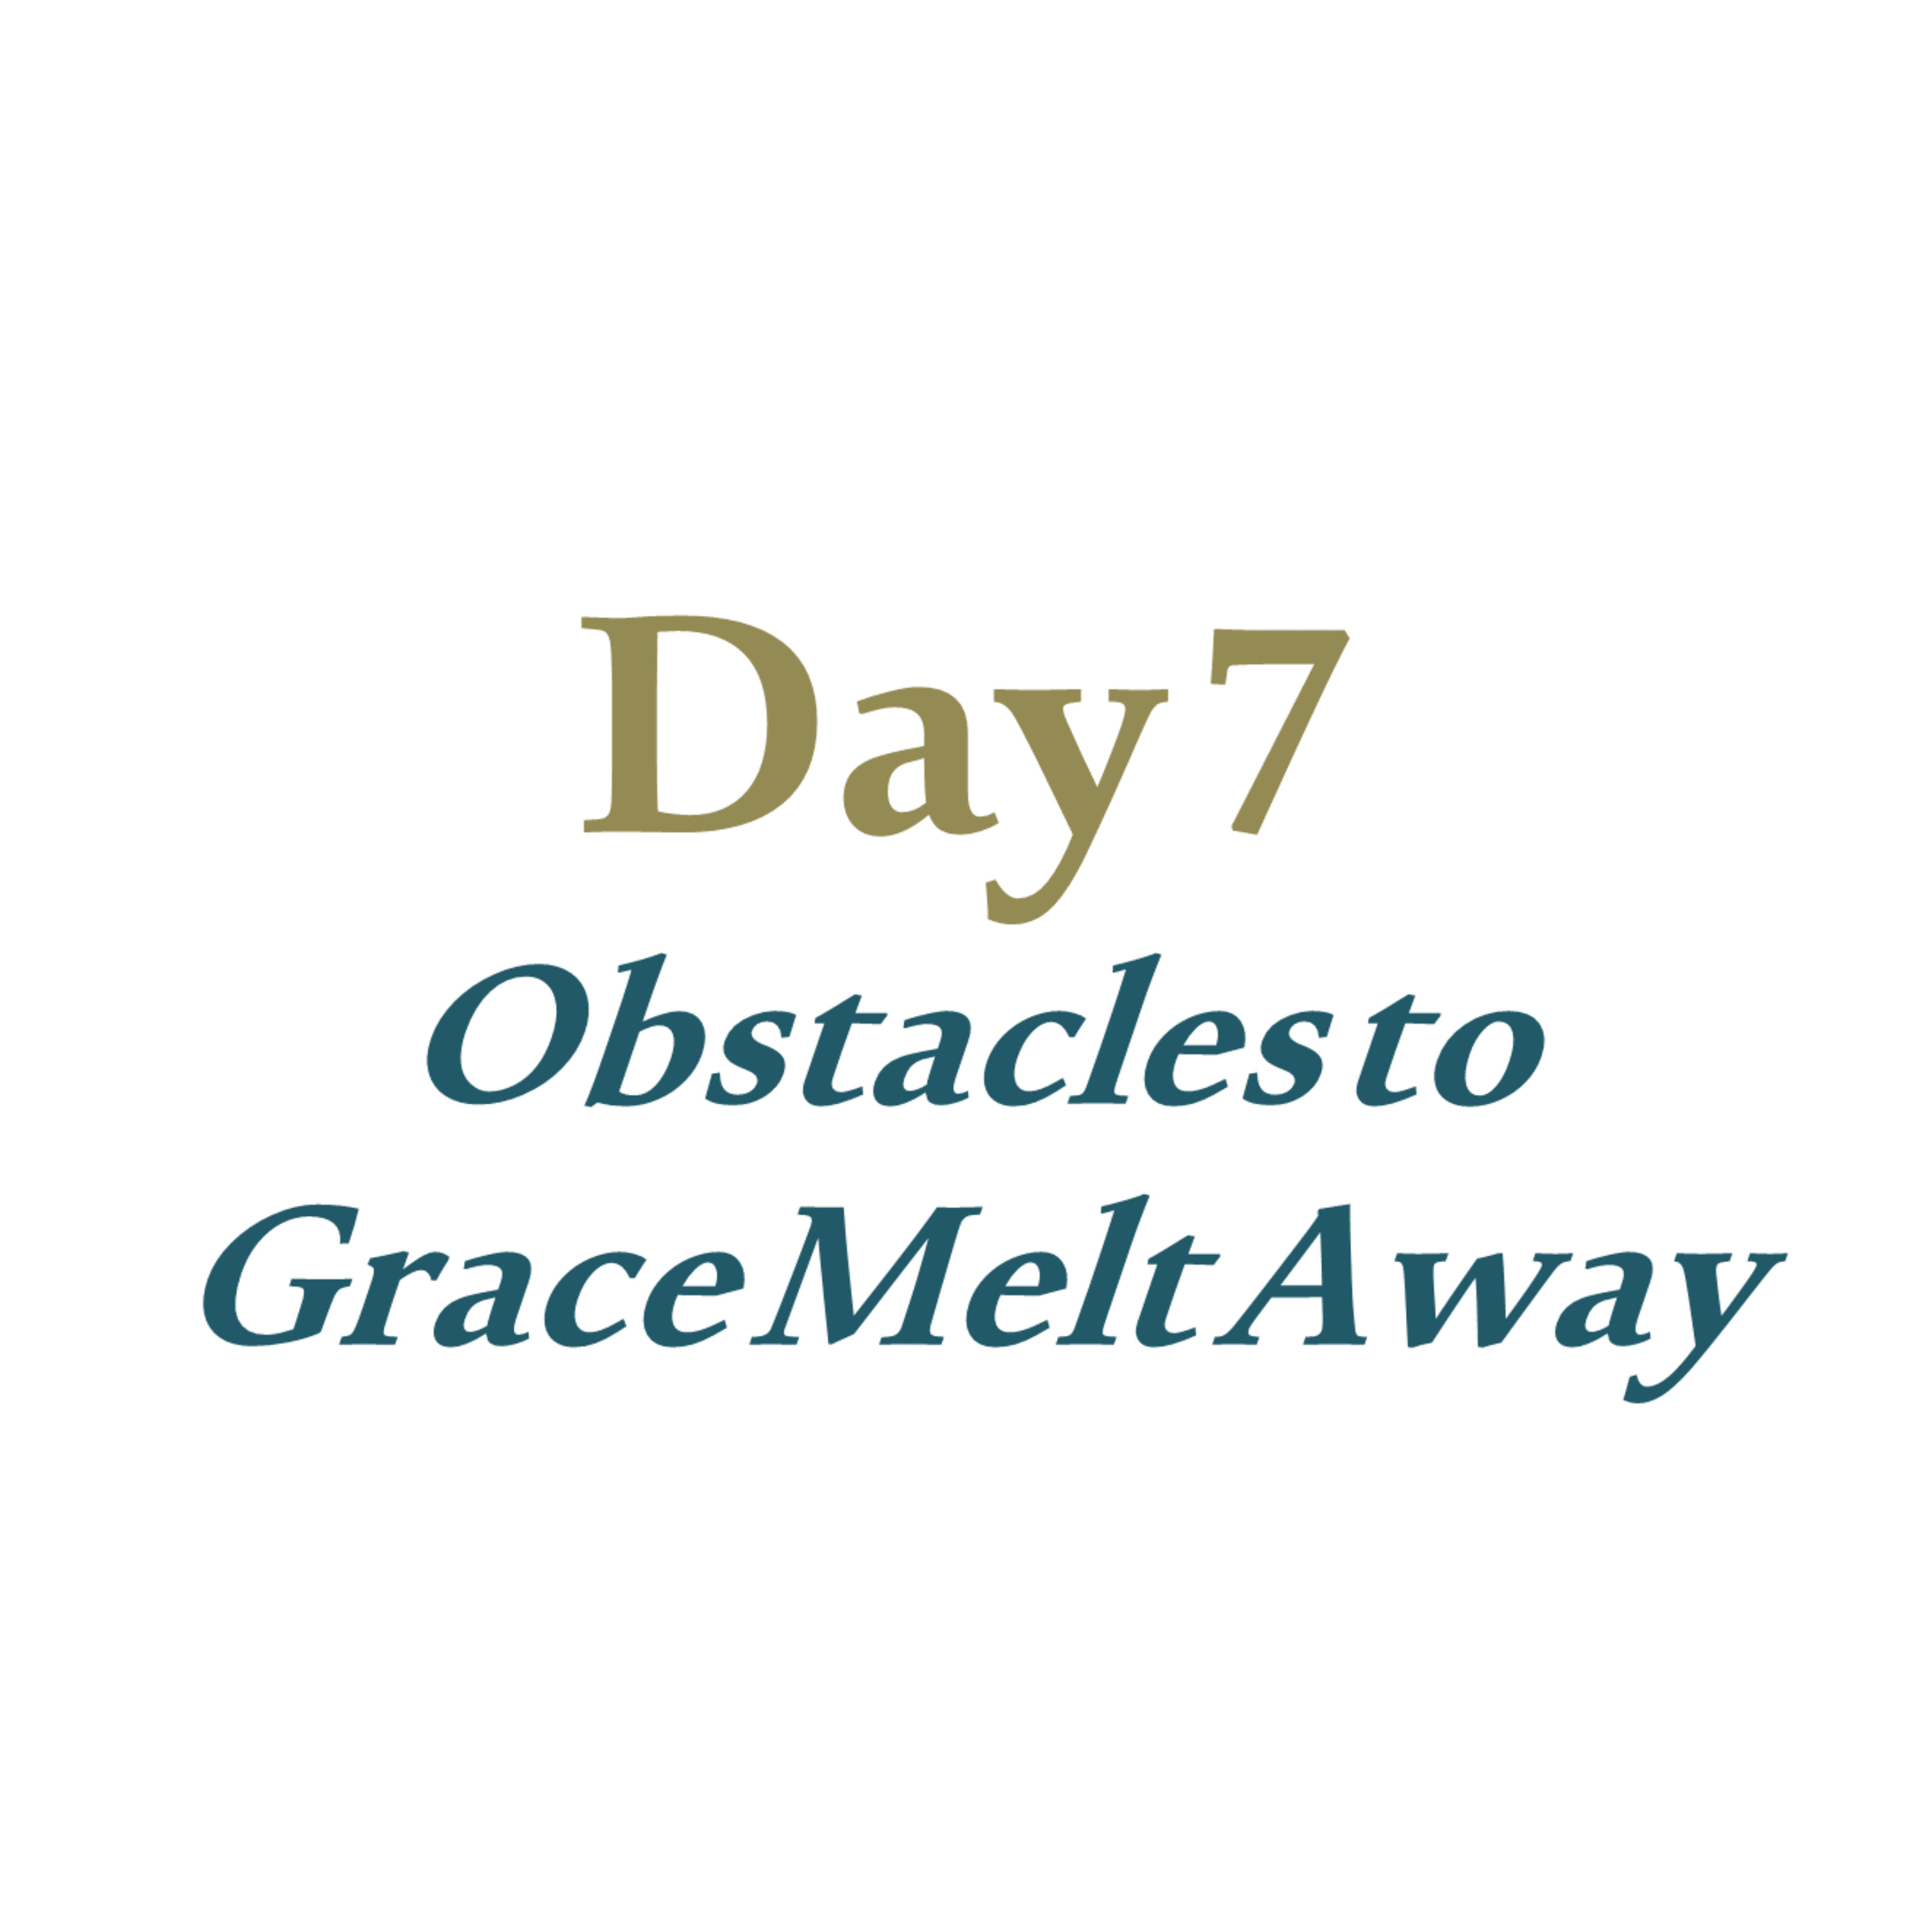 Day 7 - Obstacles to Grace Melt Away